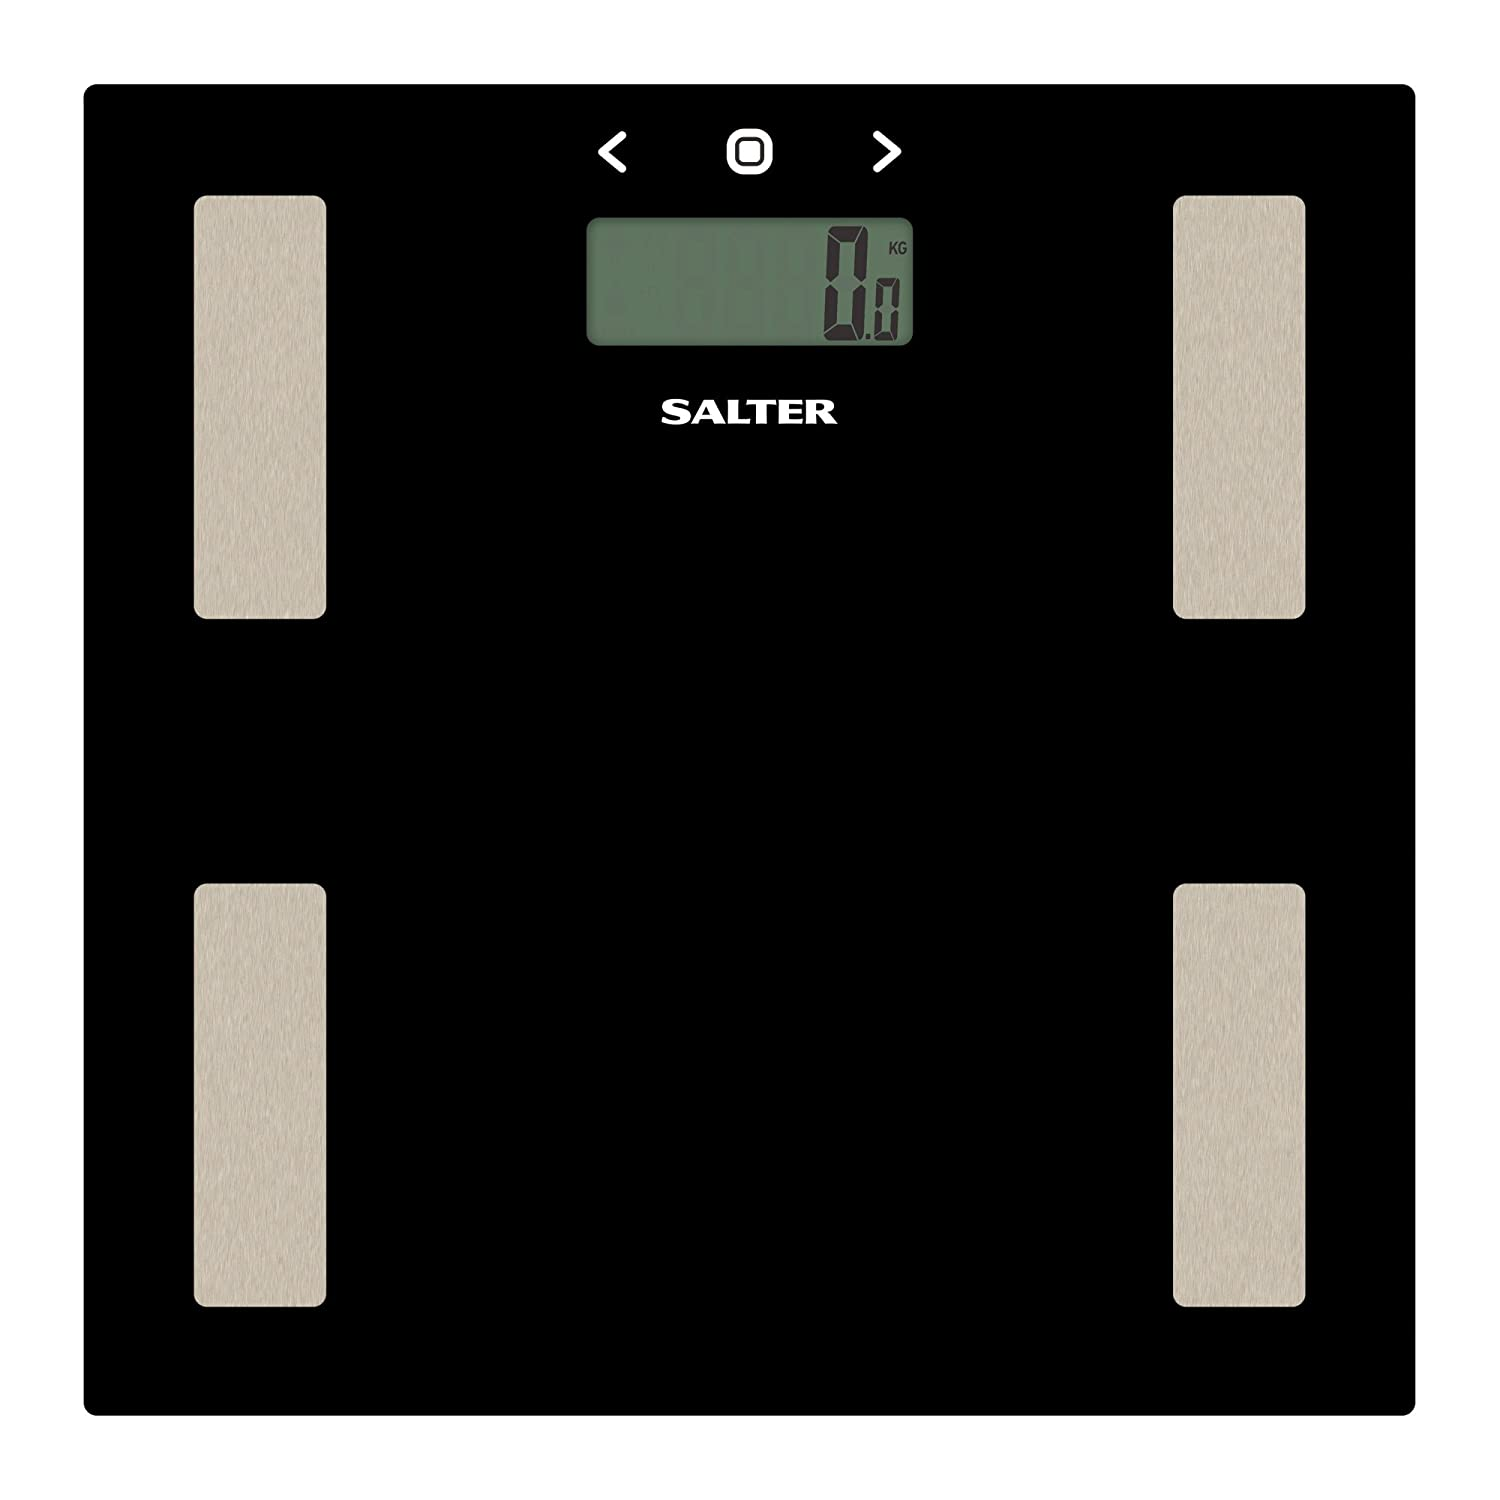 Salter Glass Body Analyser Digital Bathroom Scales Measure Weight